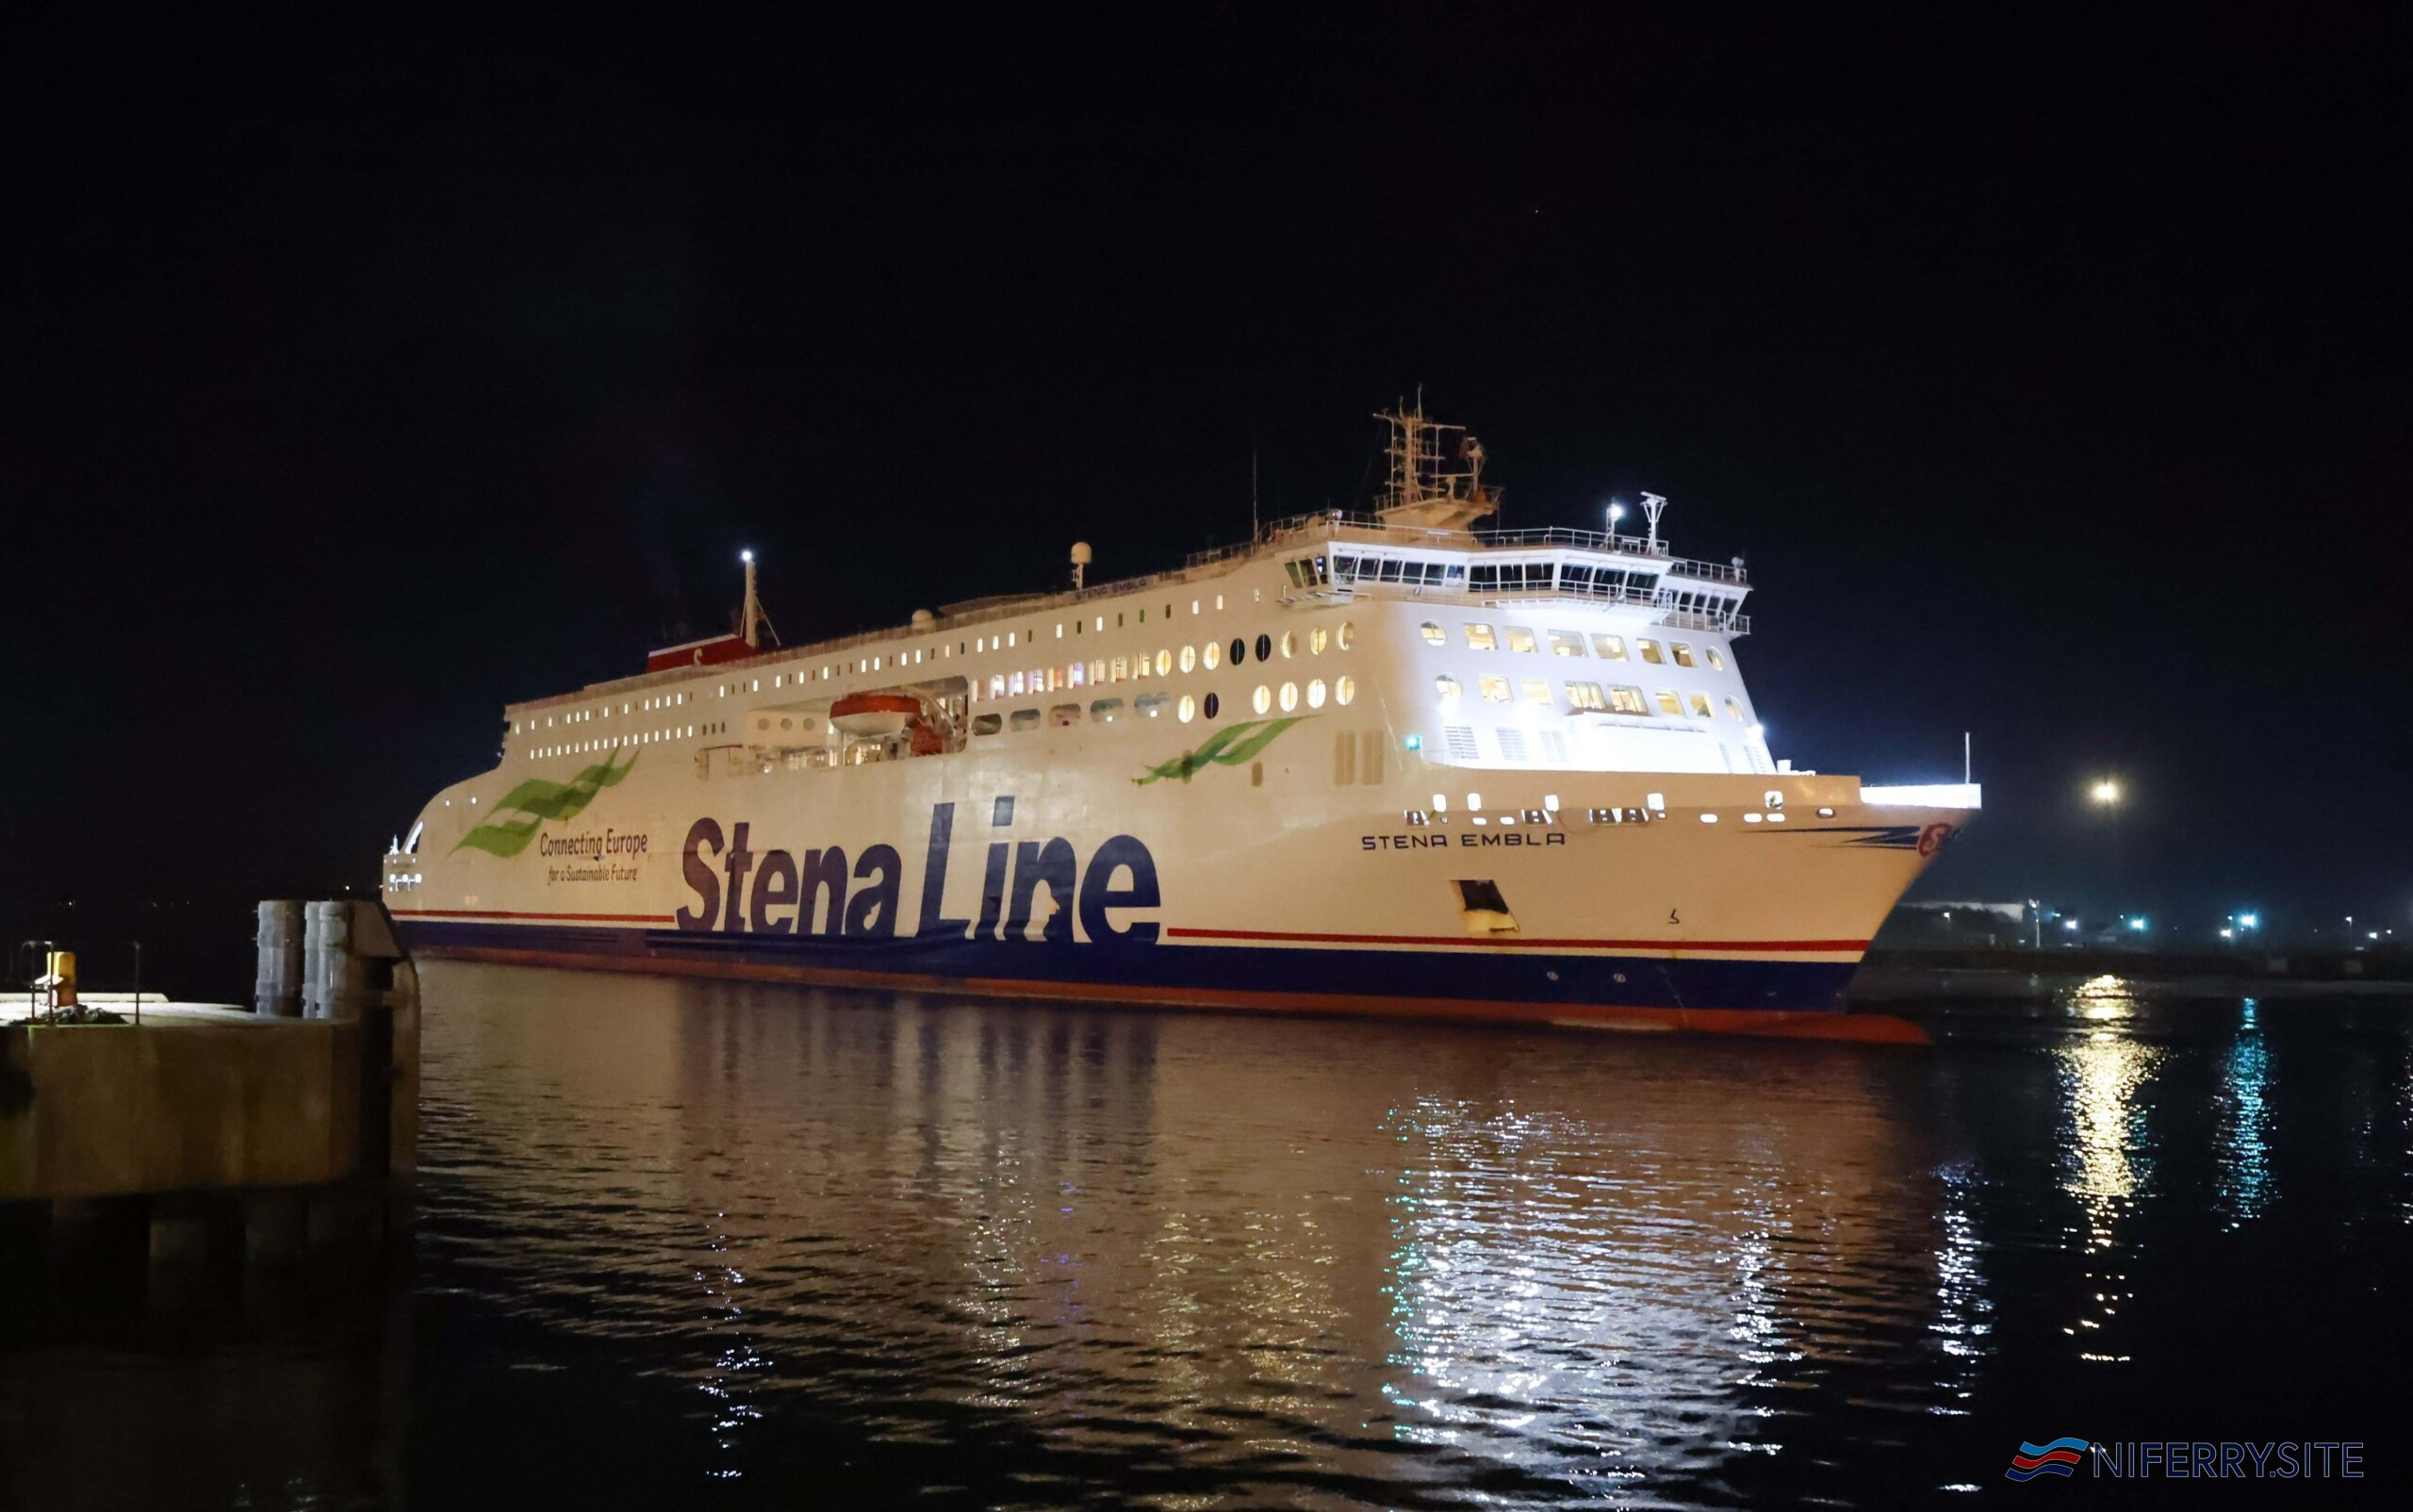 STENA EMBLA MAKES FIRST BELFAST-LIVERPOOL CROSSING…Stena Line's newest ship on the Irish Sea has made its inaugural crossing on the Belfast-Liverpool service. Stena Embla will join her sister ship Stena Edda on the popular Belfast – Liverpool route with the capacity to carry 1,000 passengers, 120 cars and with 3,100 freight lane meters